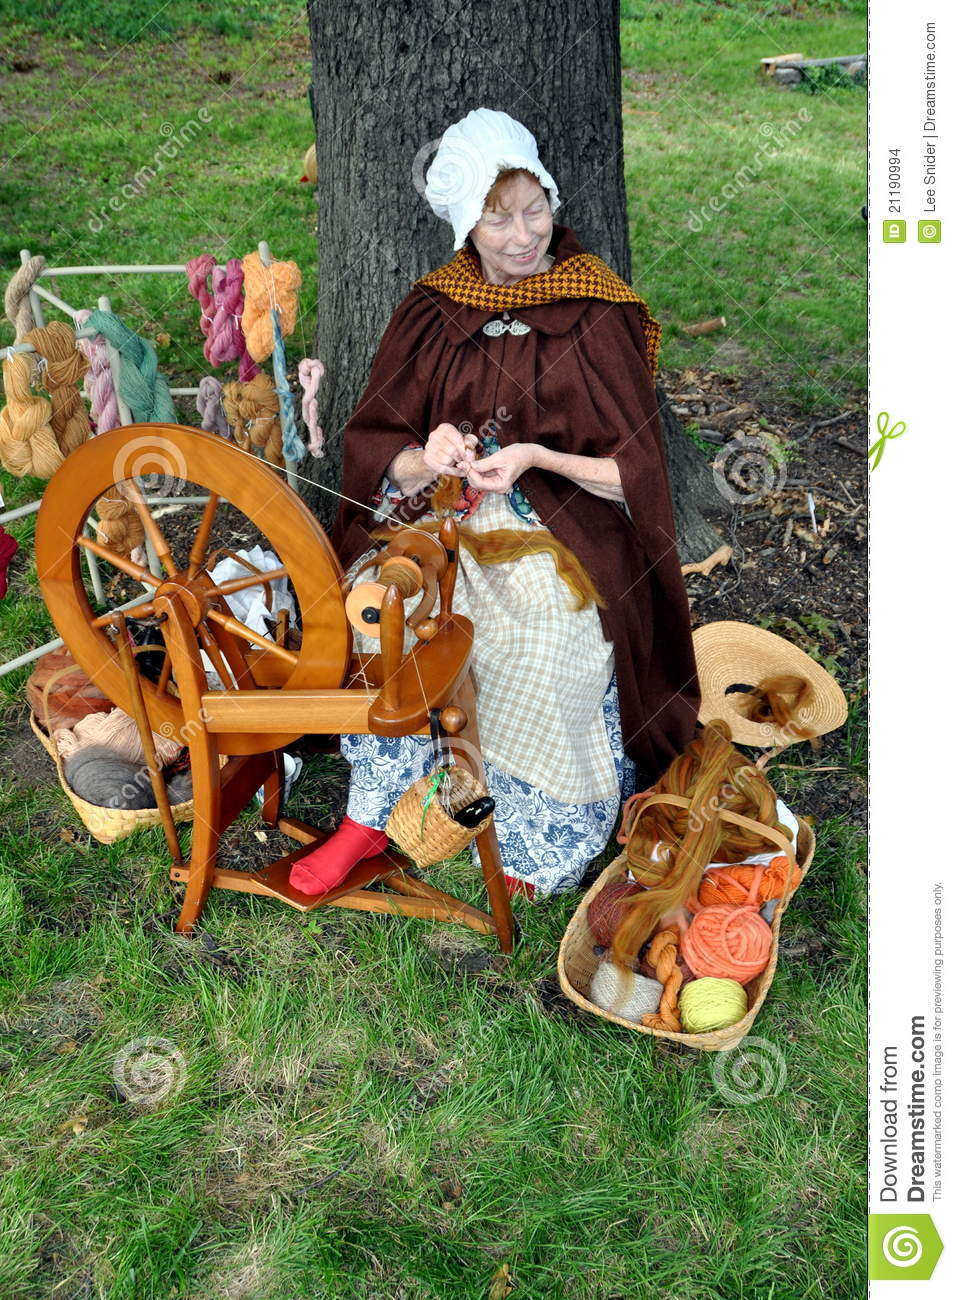 NYC: Woman Using Spinning Wheel